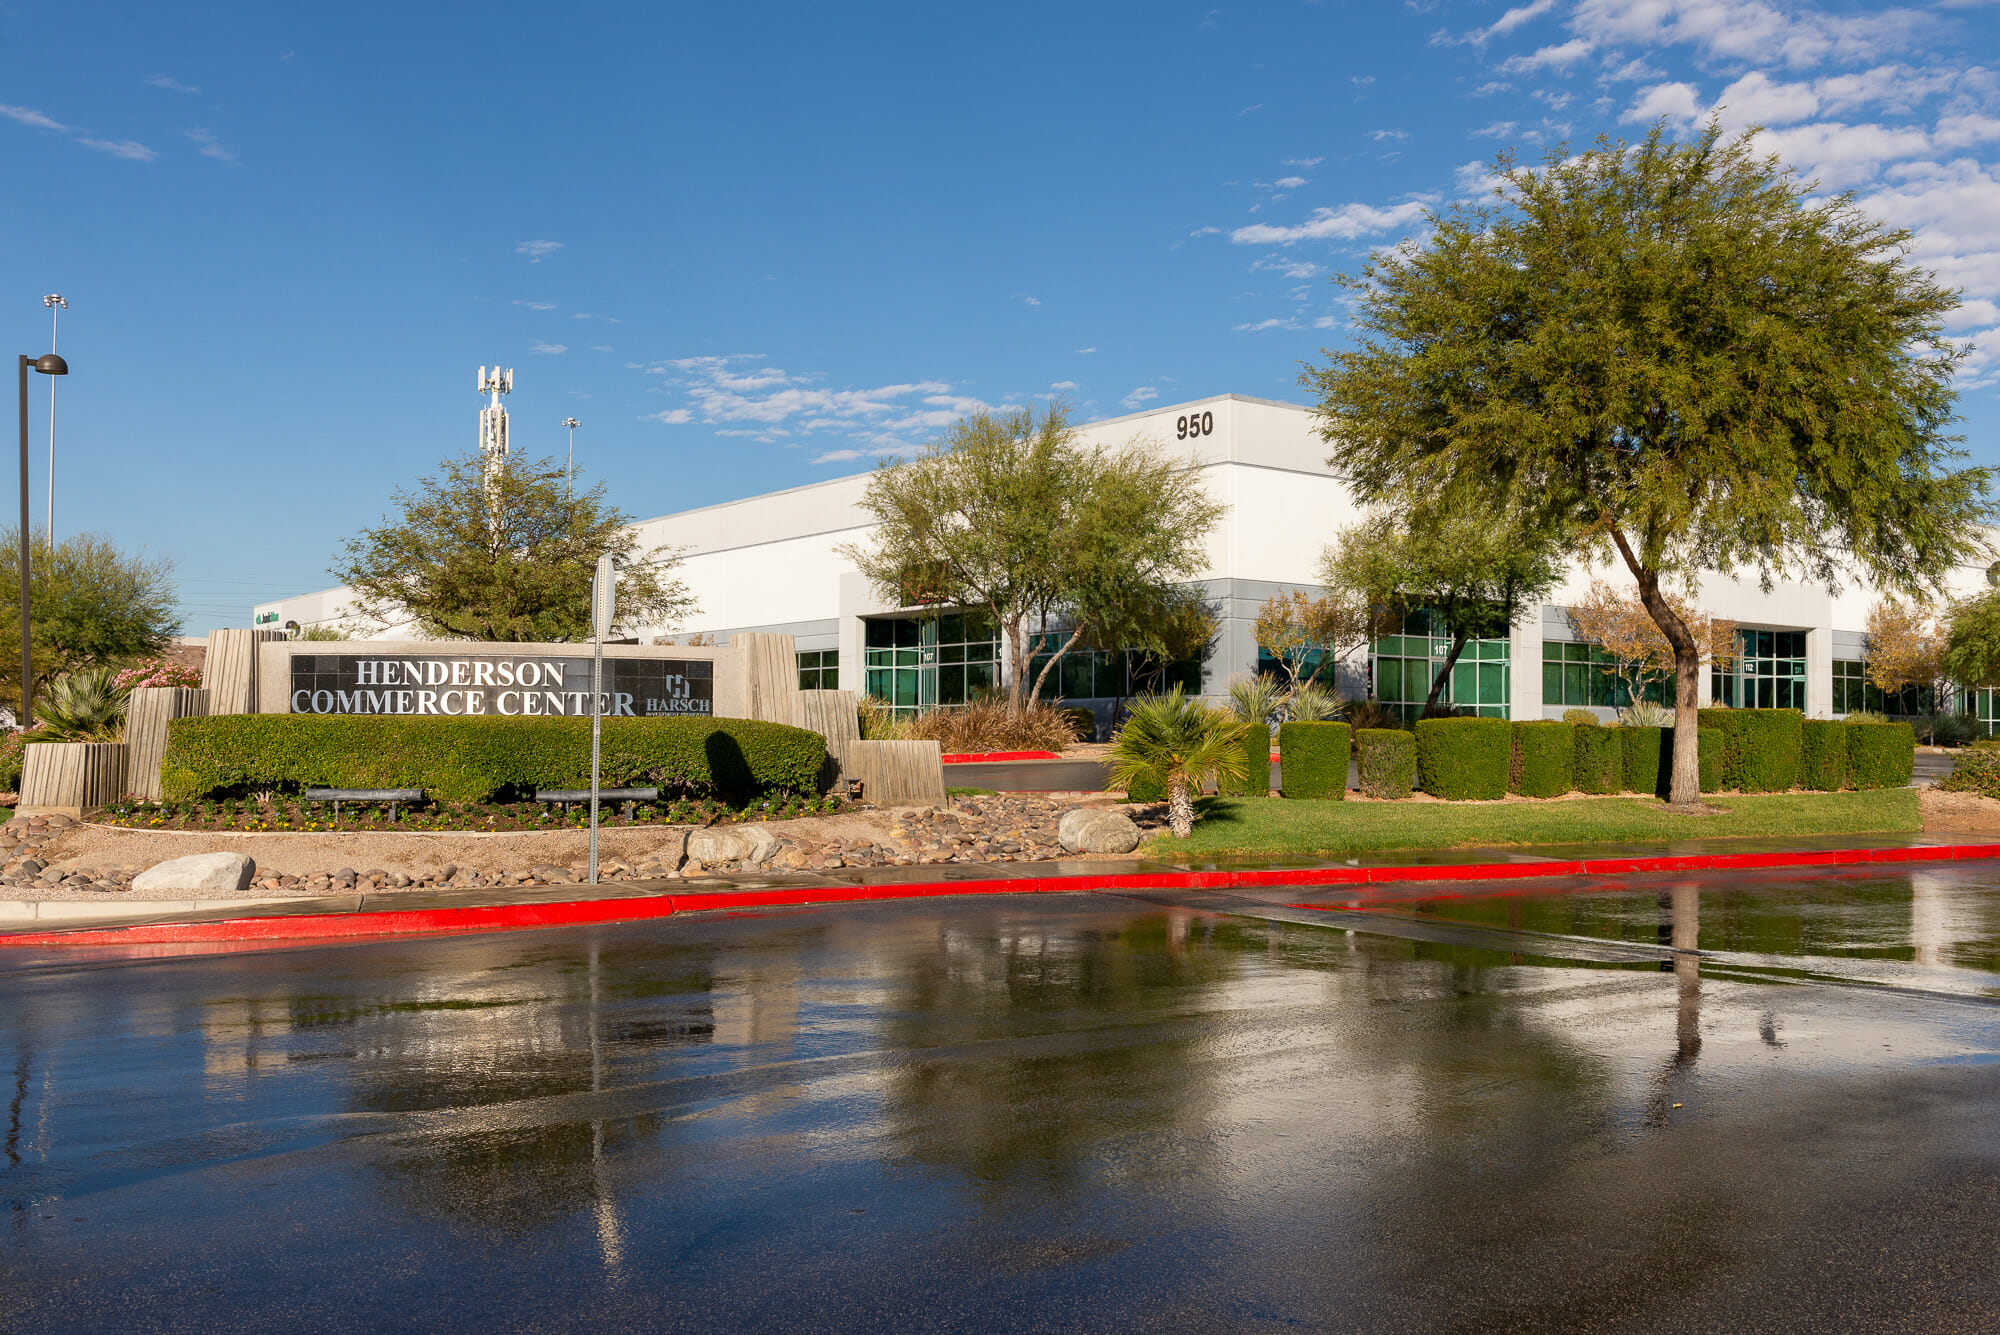 Exterior of Building 950 at Henderson Commerce Center - Warm Springs with monument sign